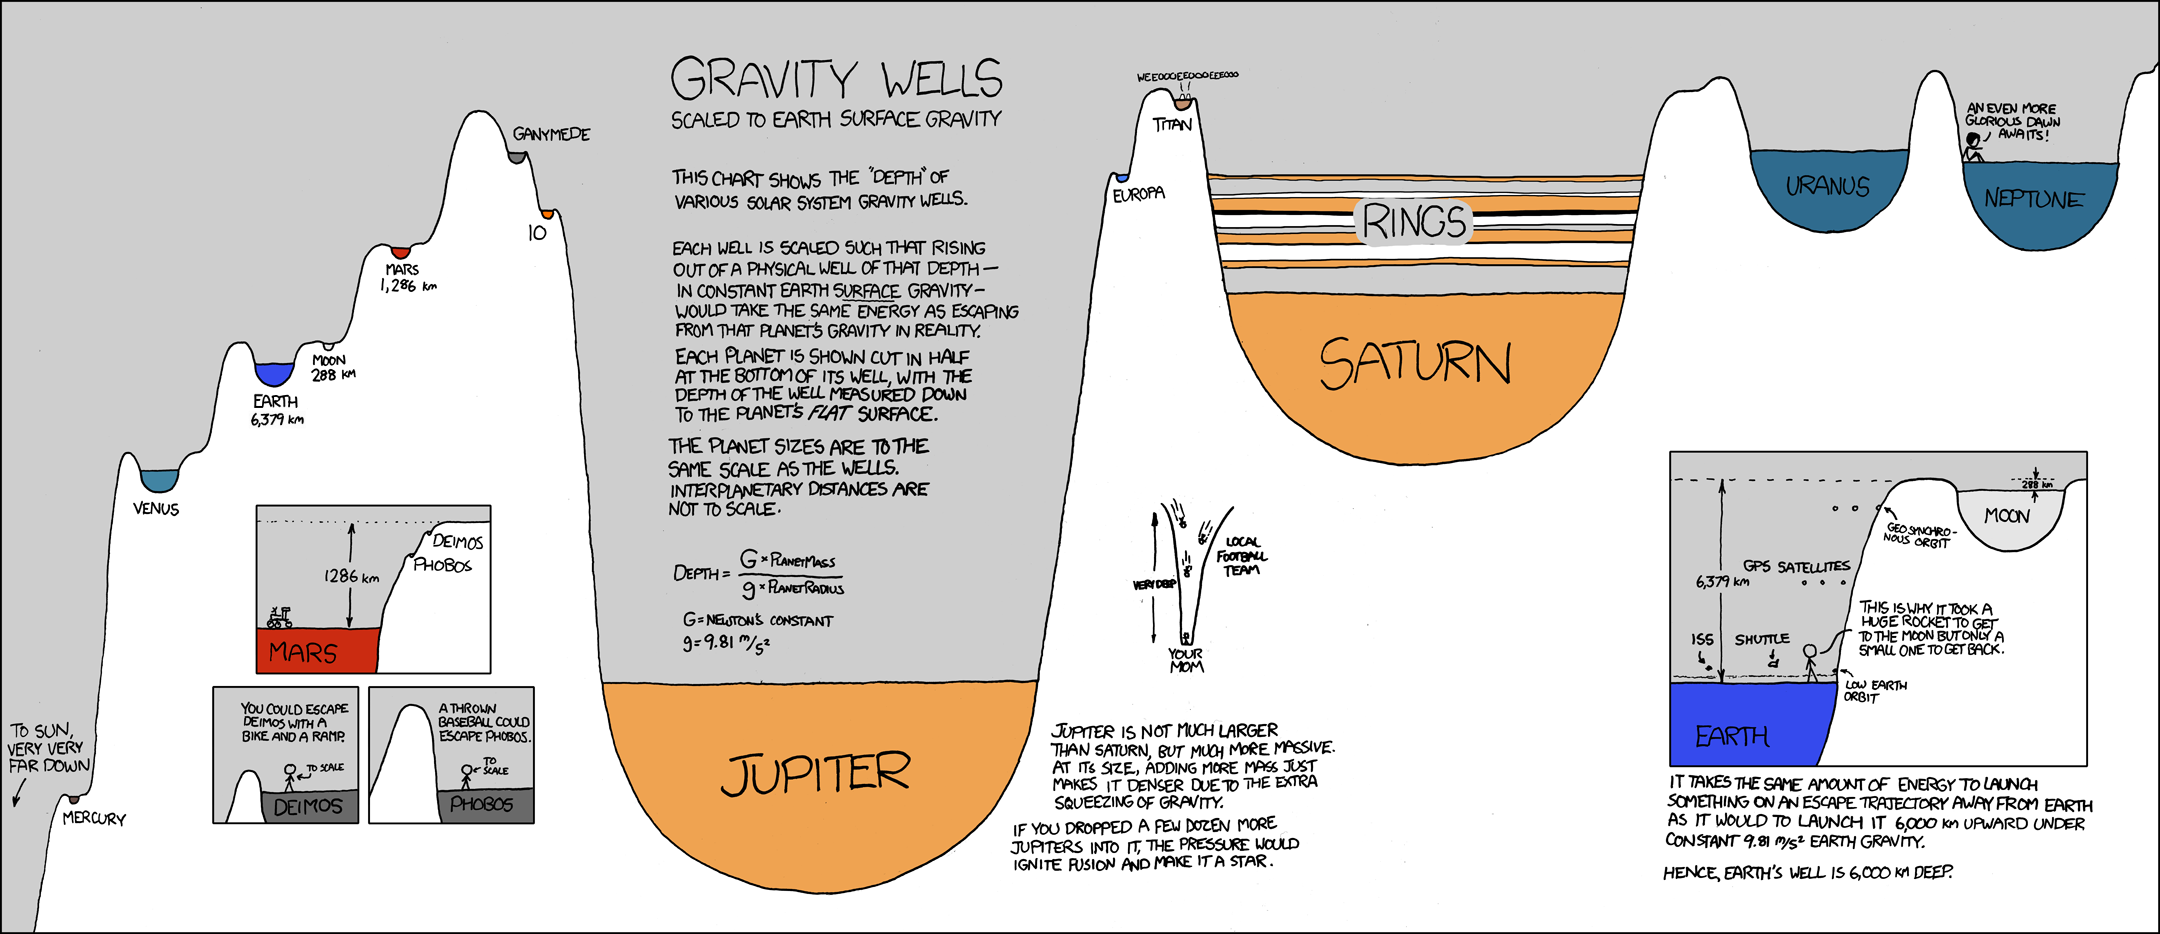 http://imgs.xkcd.com/comics/gravity_wells_large.png